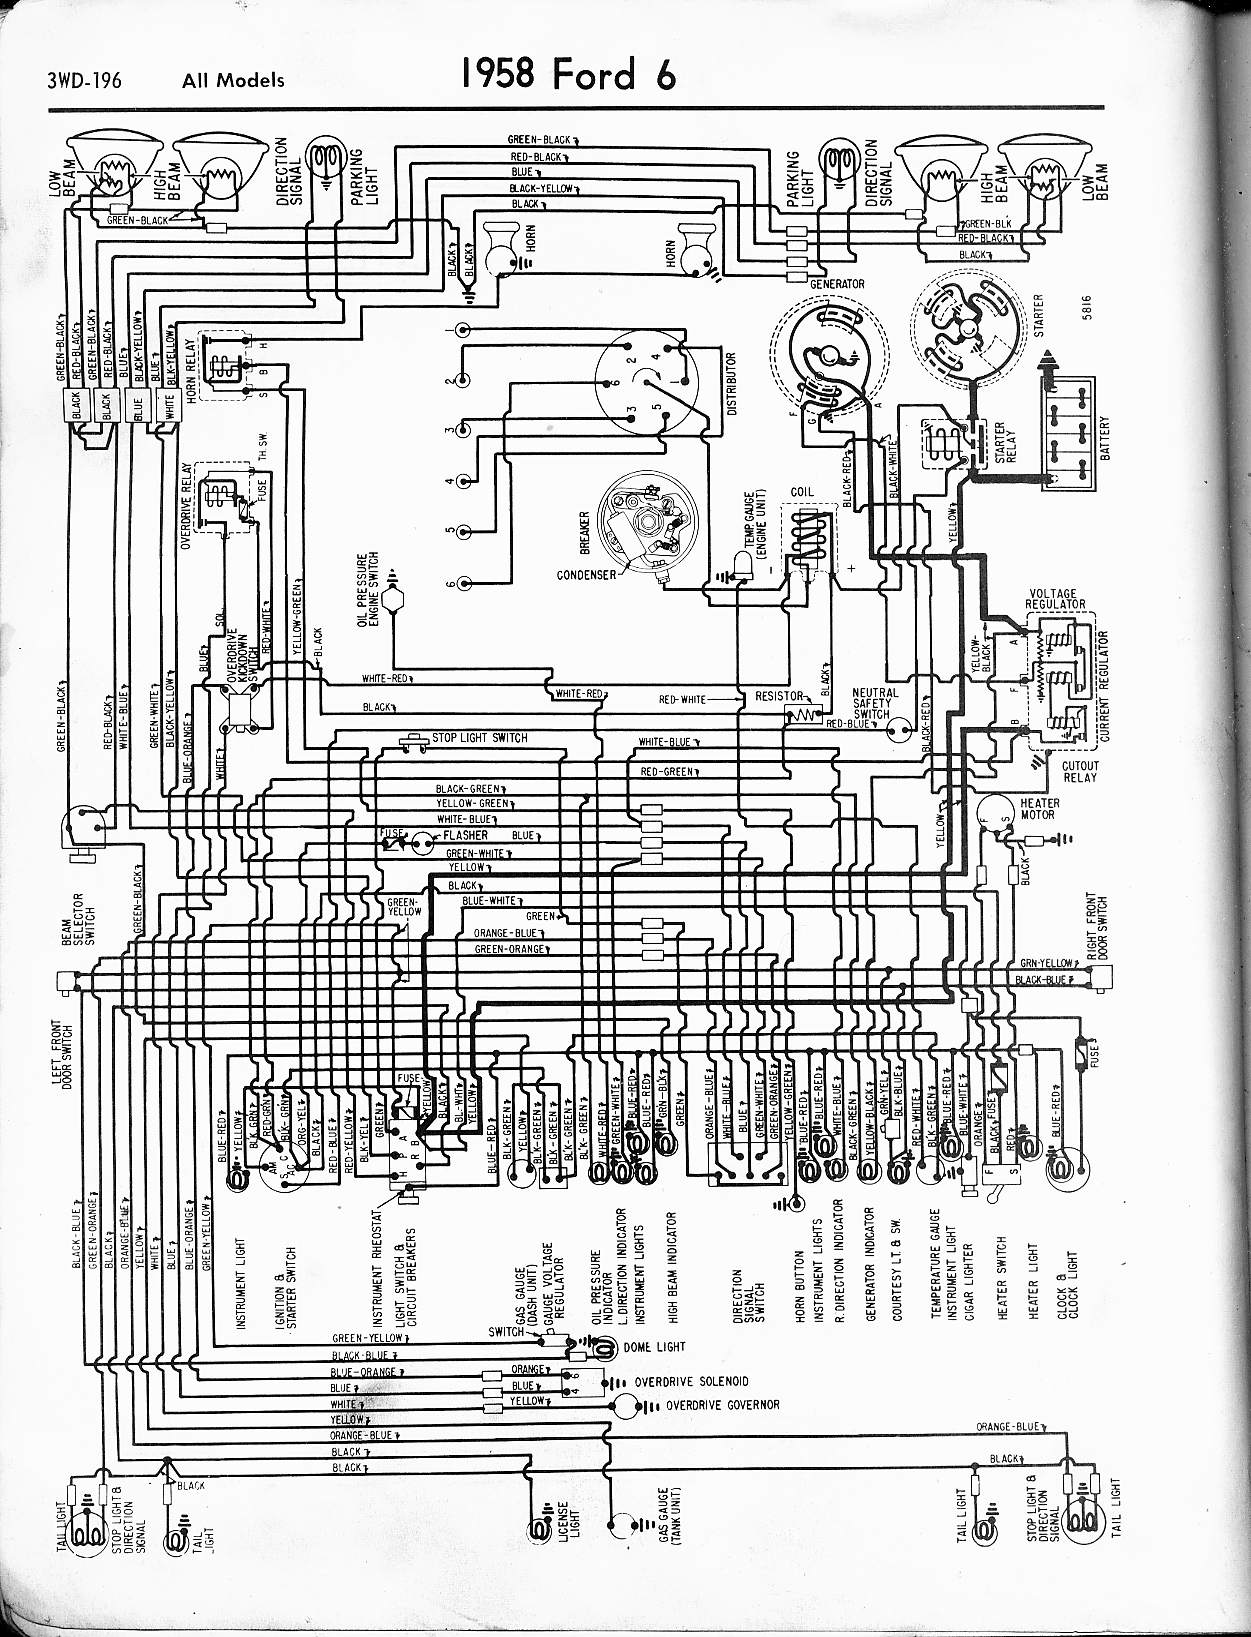 1957 dodge wiring diagram wiring diagram name Dodge Challenger Wiring-Diagram 1957 dodge d100 wiring diagram wiring diagram dodge durango engine wiring diagram 1957 dodge wiring diagram